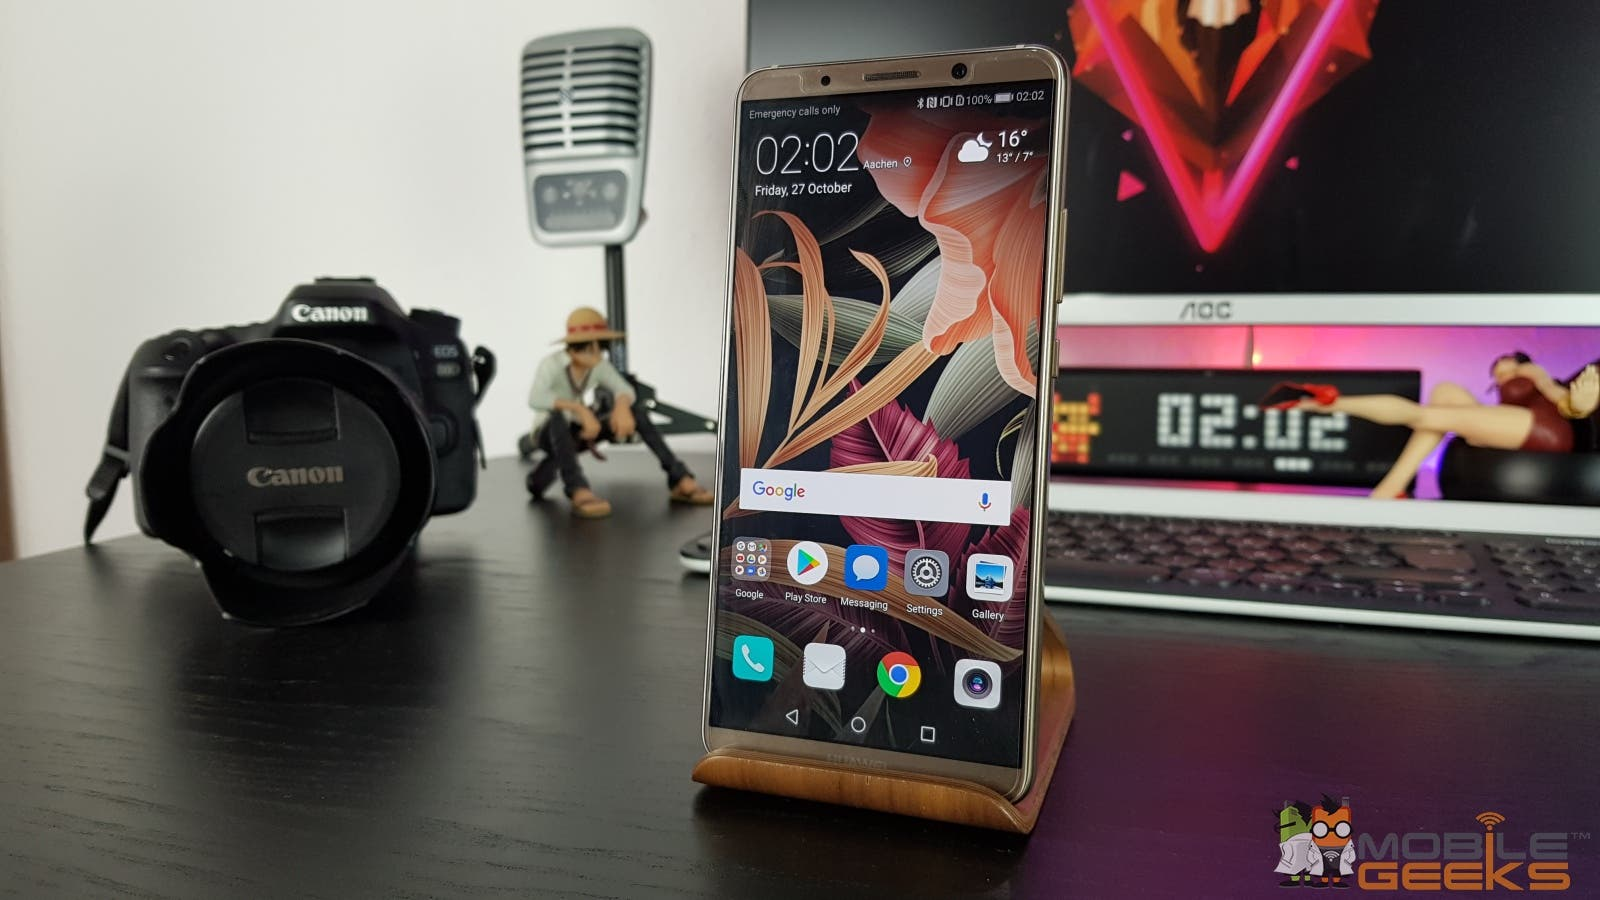 Huawei Mate 10 Pro Vorderseite